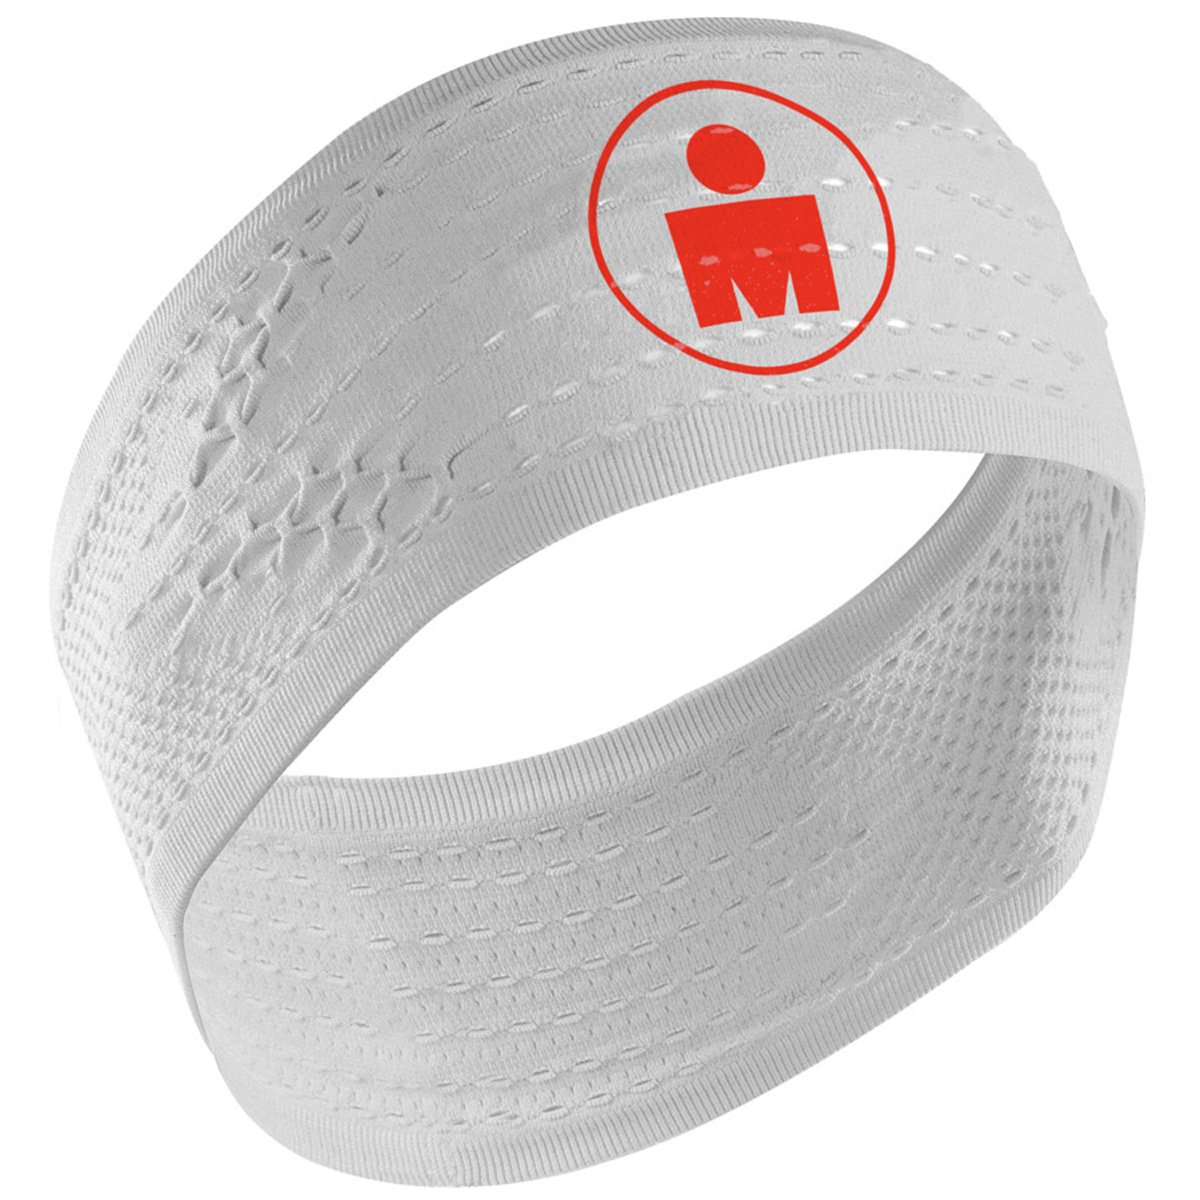 Compressport - Headband On/Off Ironman, Color White 024 011